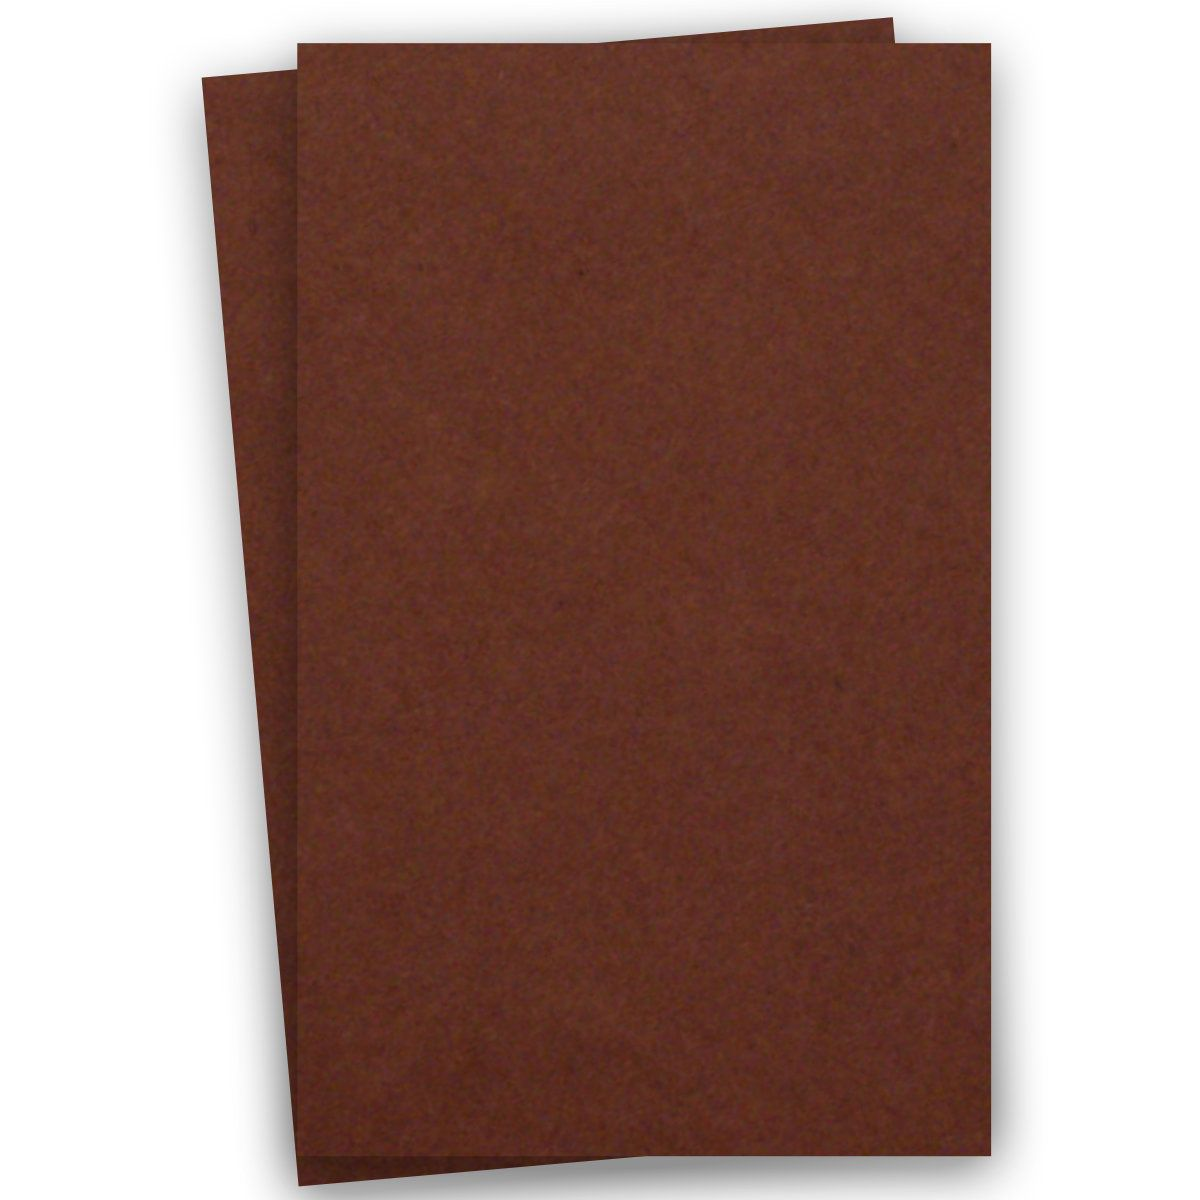 Remake Brown Autumn 11x17 Card Stock Paper 140lb Cover 380gsm 100 Pk In 2020 Cardstock Paper Paper Luxury Paper